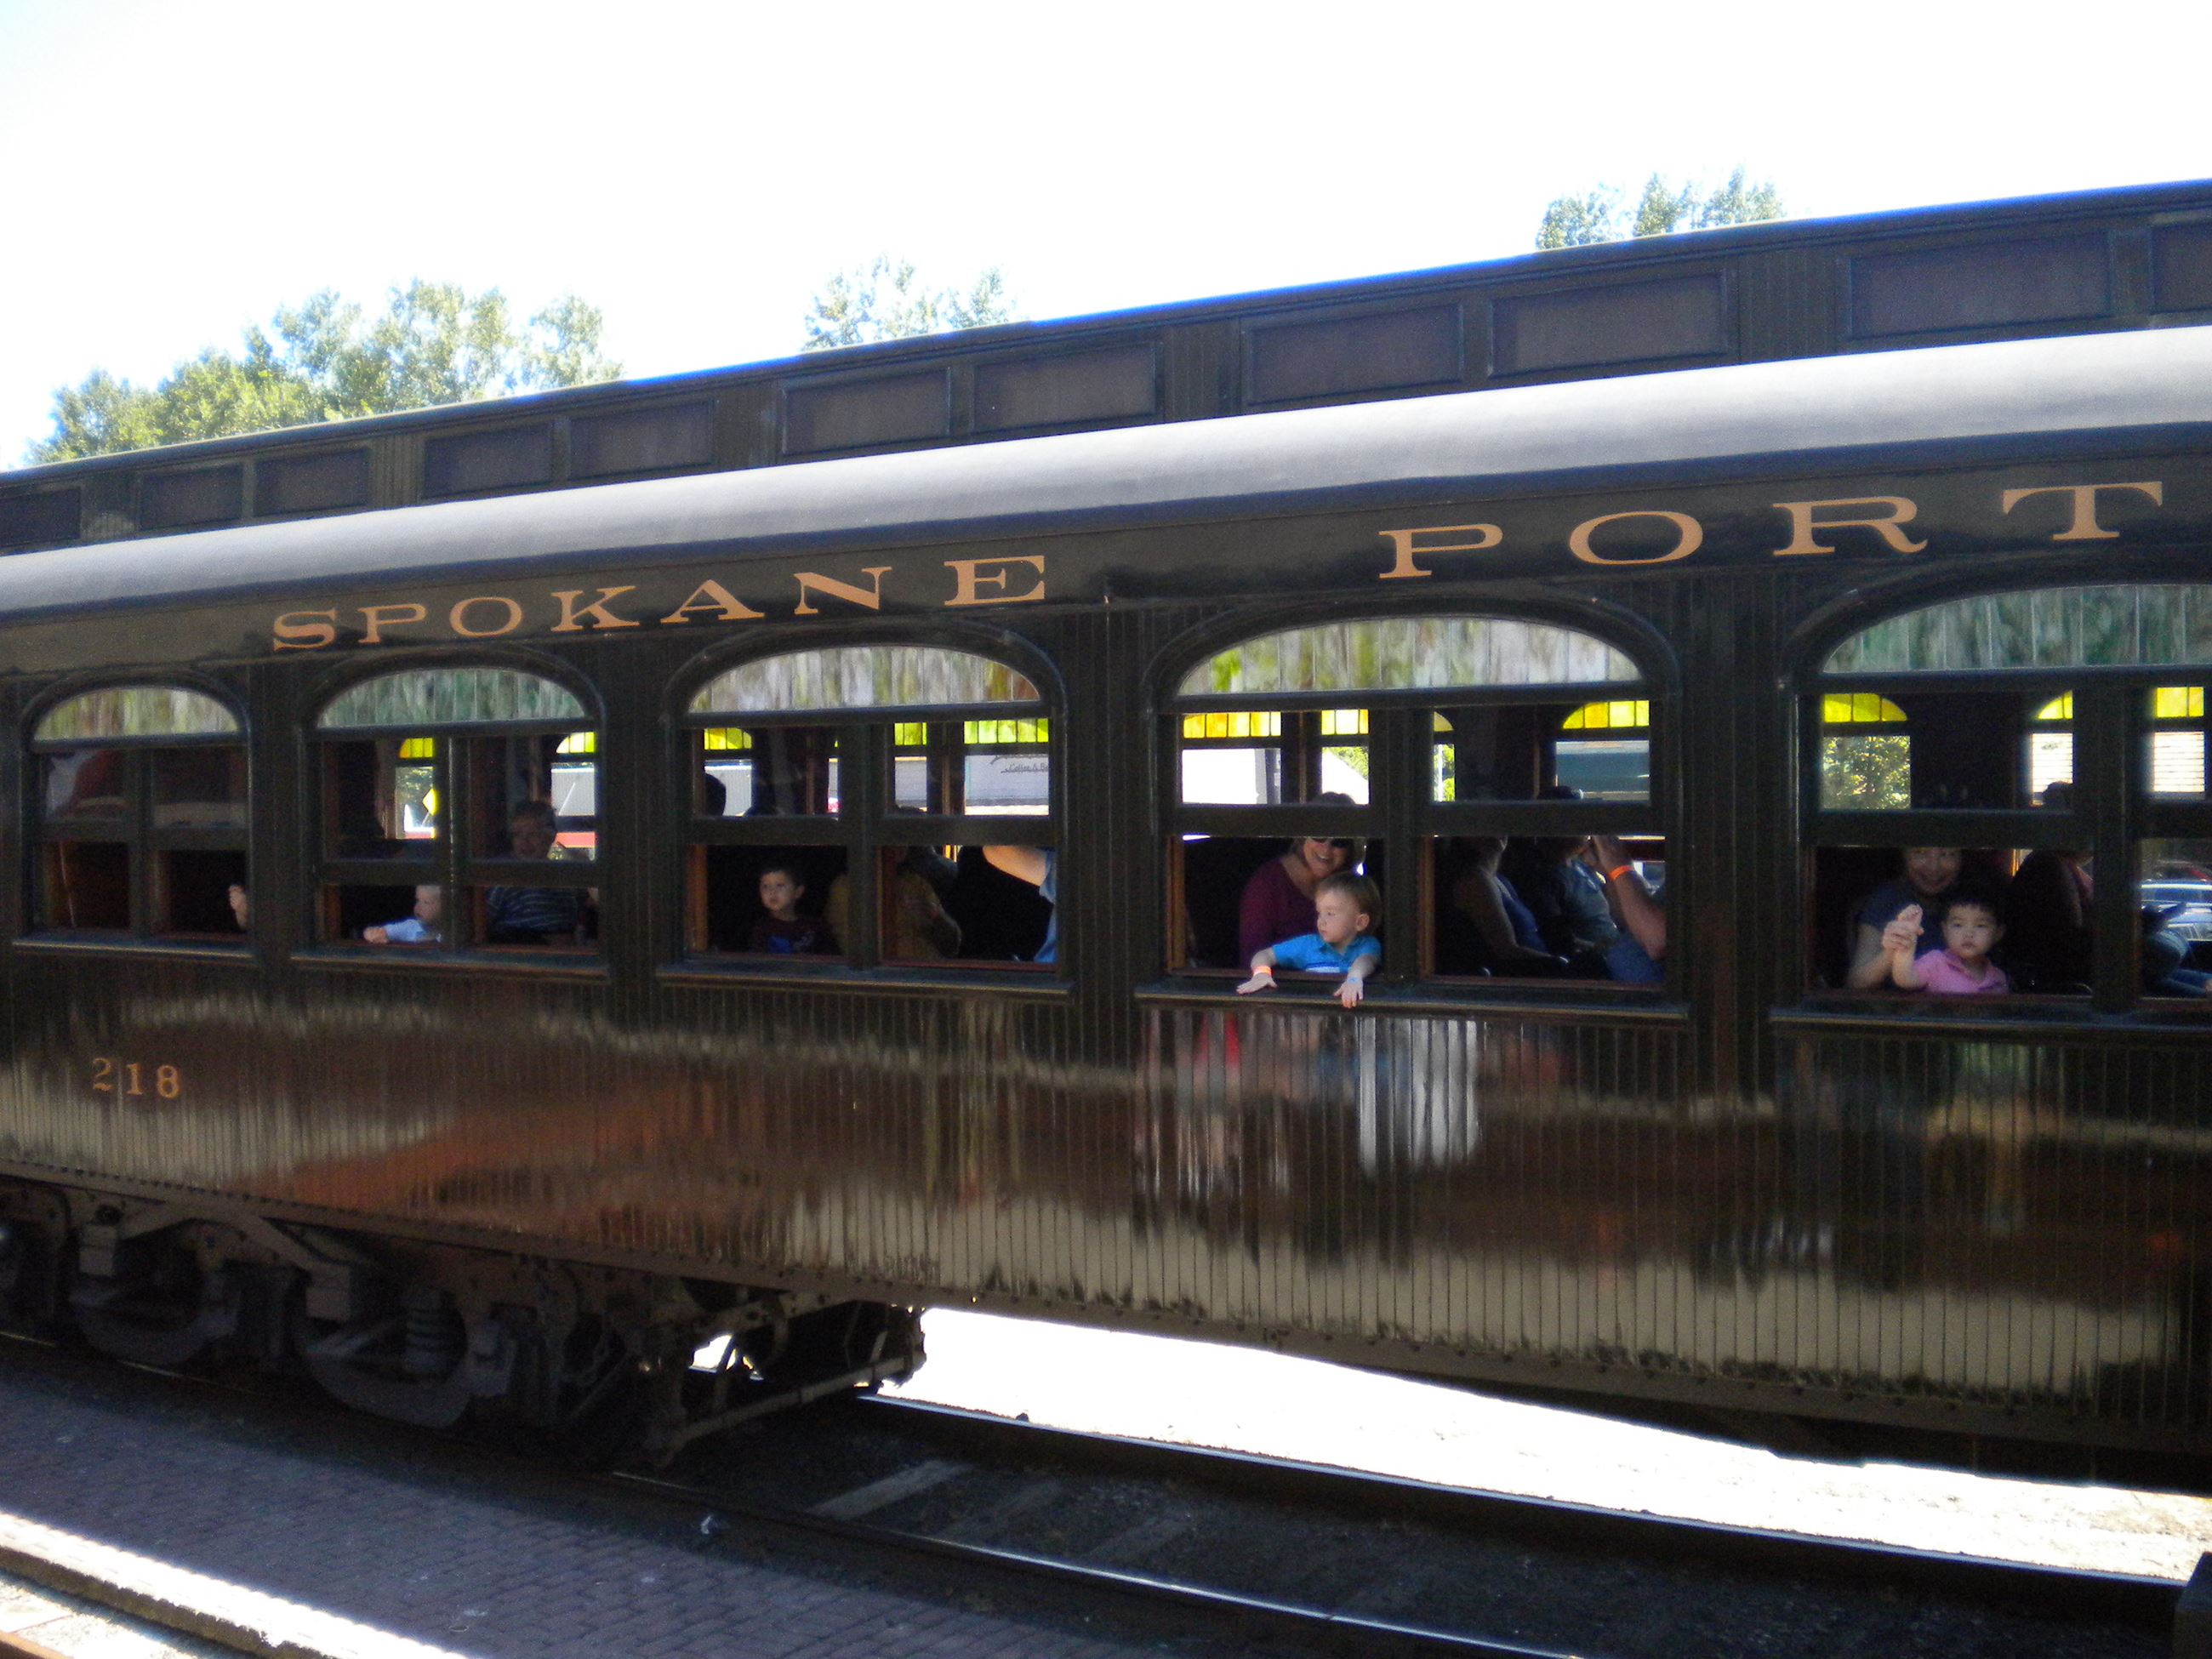 This is a picture of families on a train excursion at the Northwest Railway Museum.